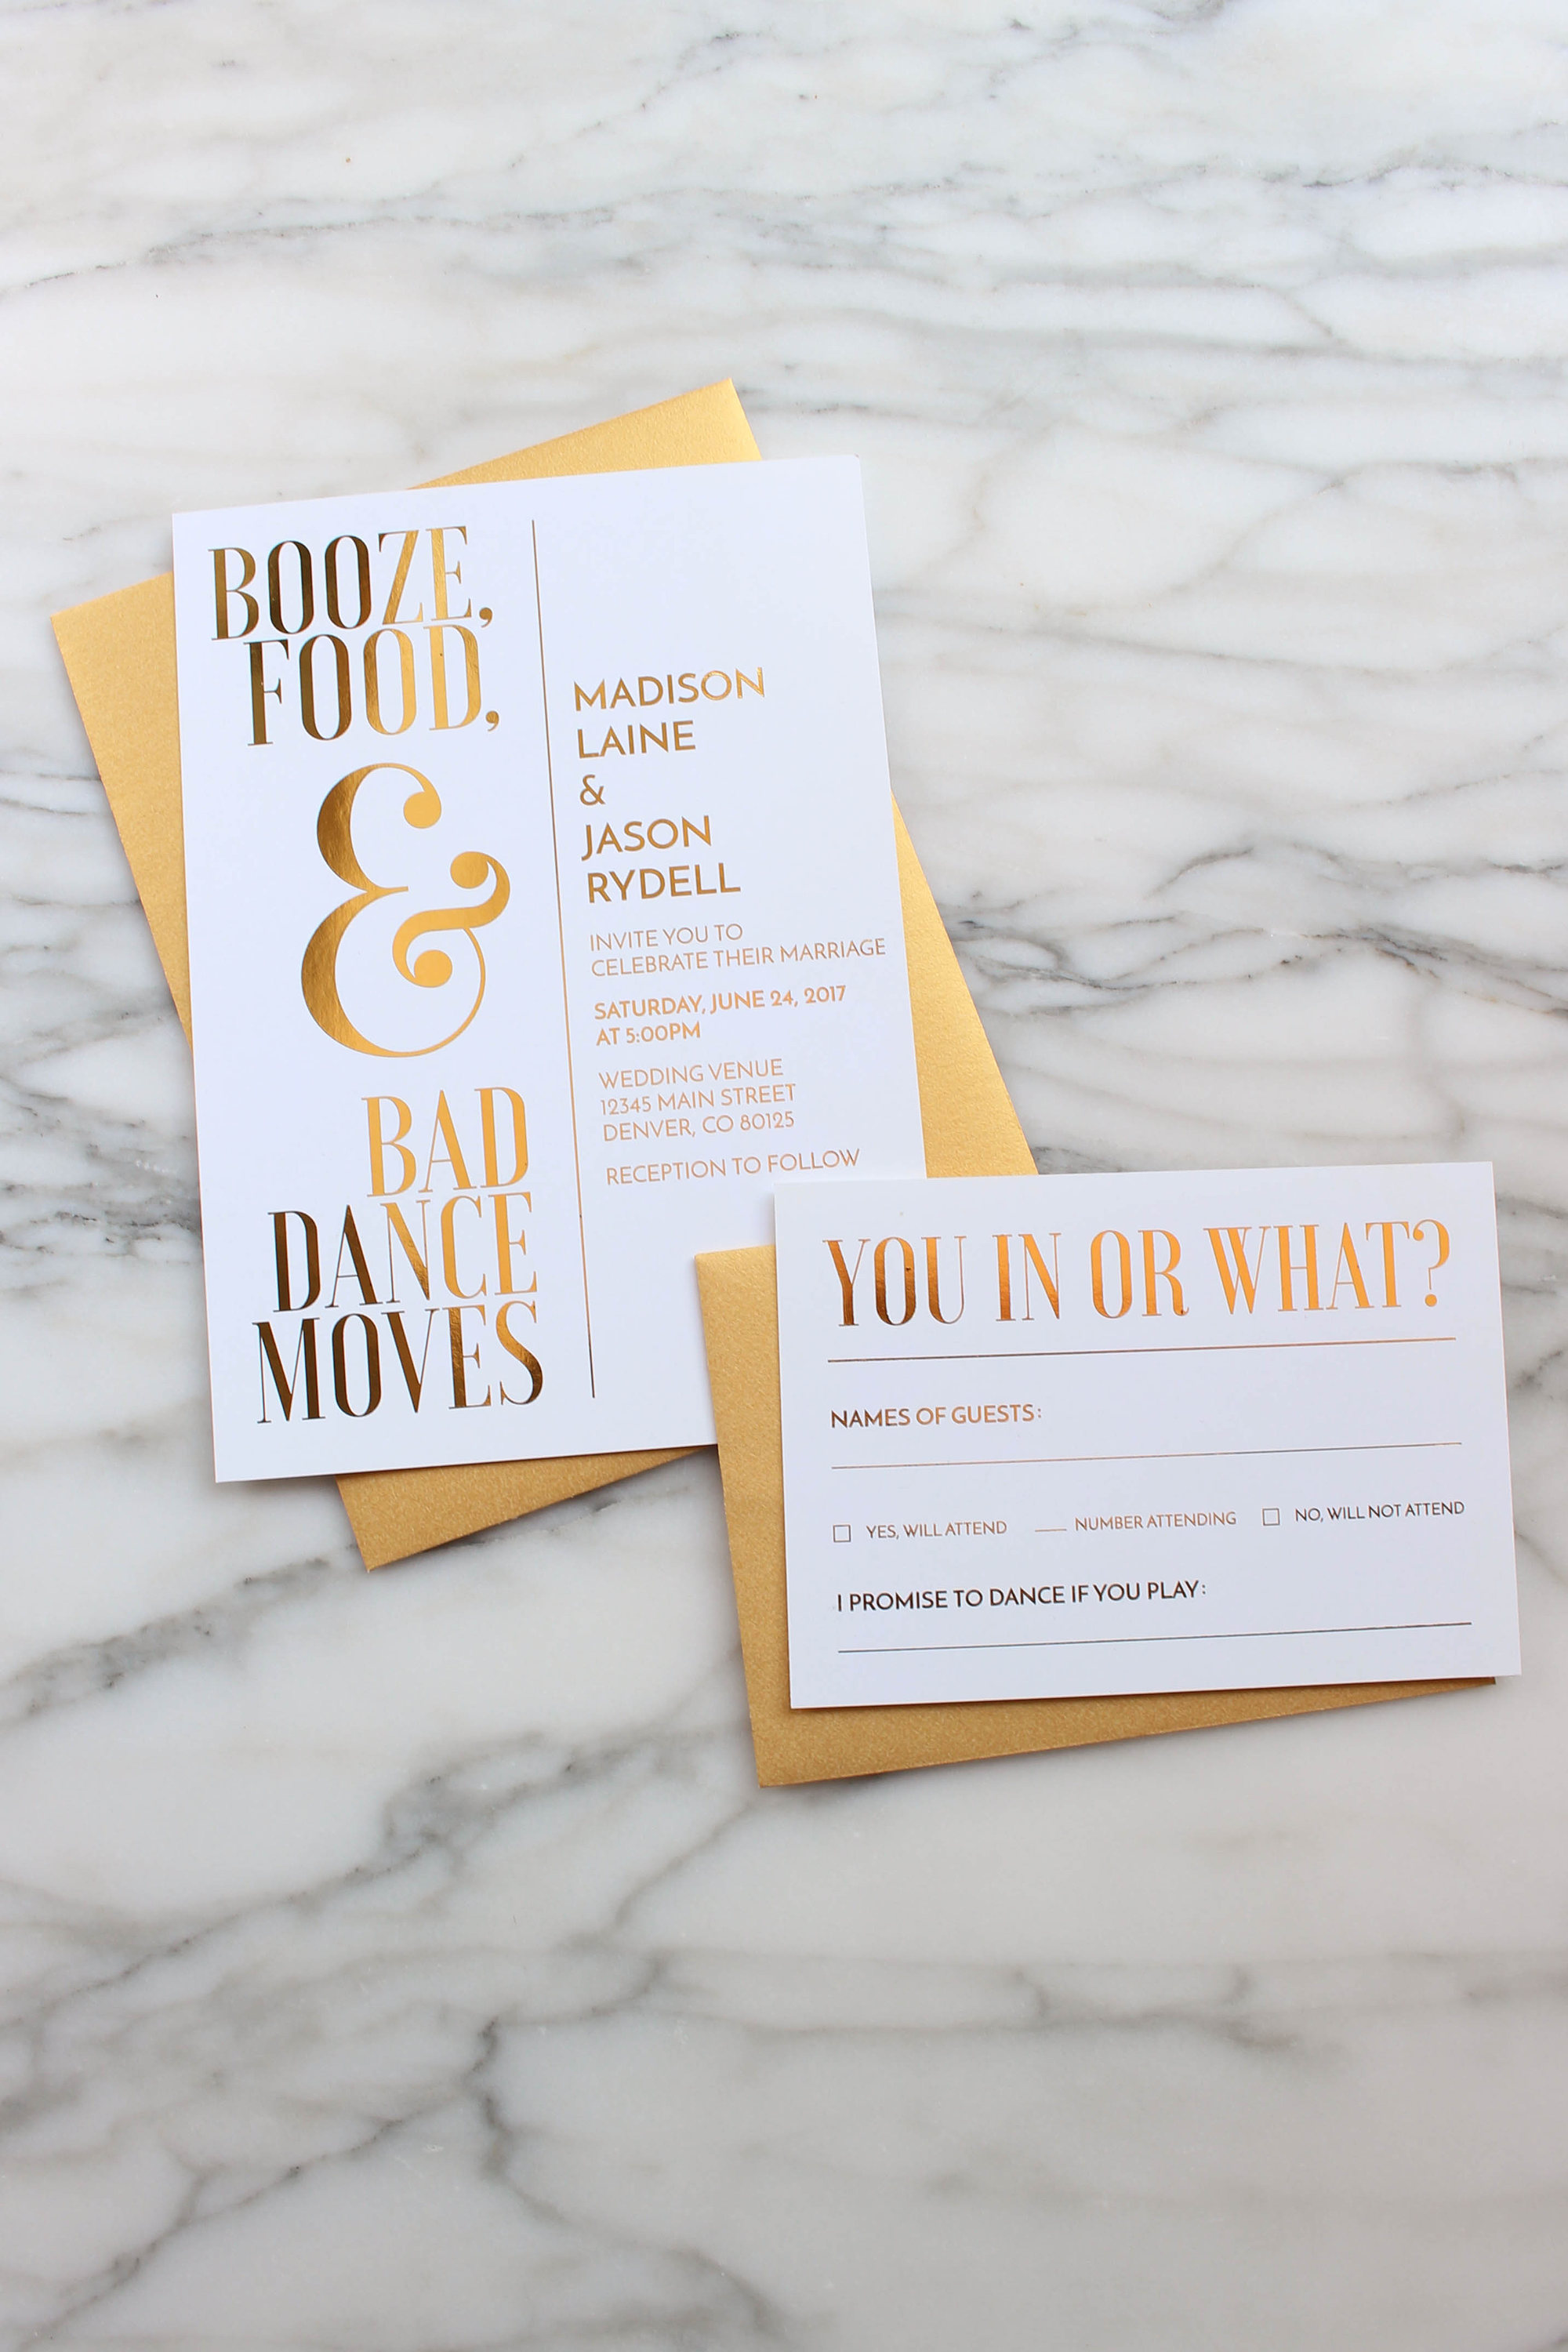 50 Funny Wedding Invitations That Will Make You Happy BridalPulse